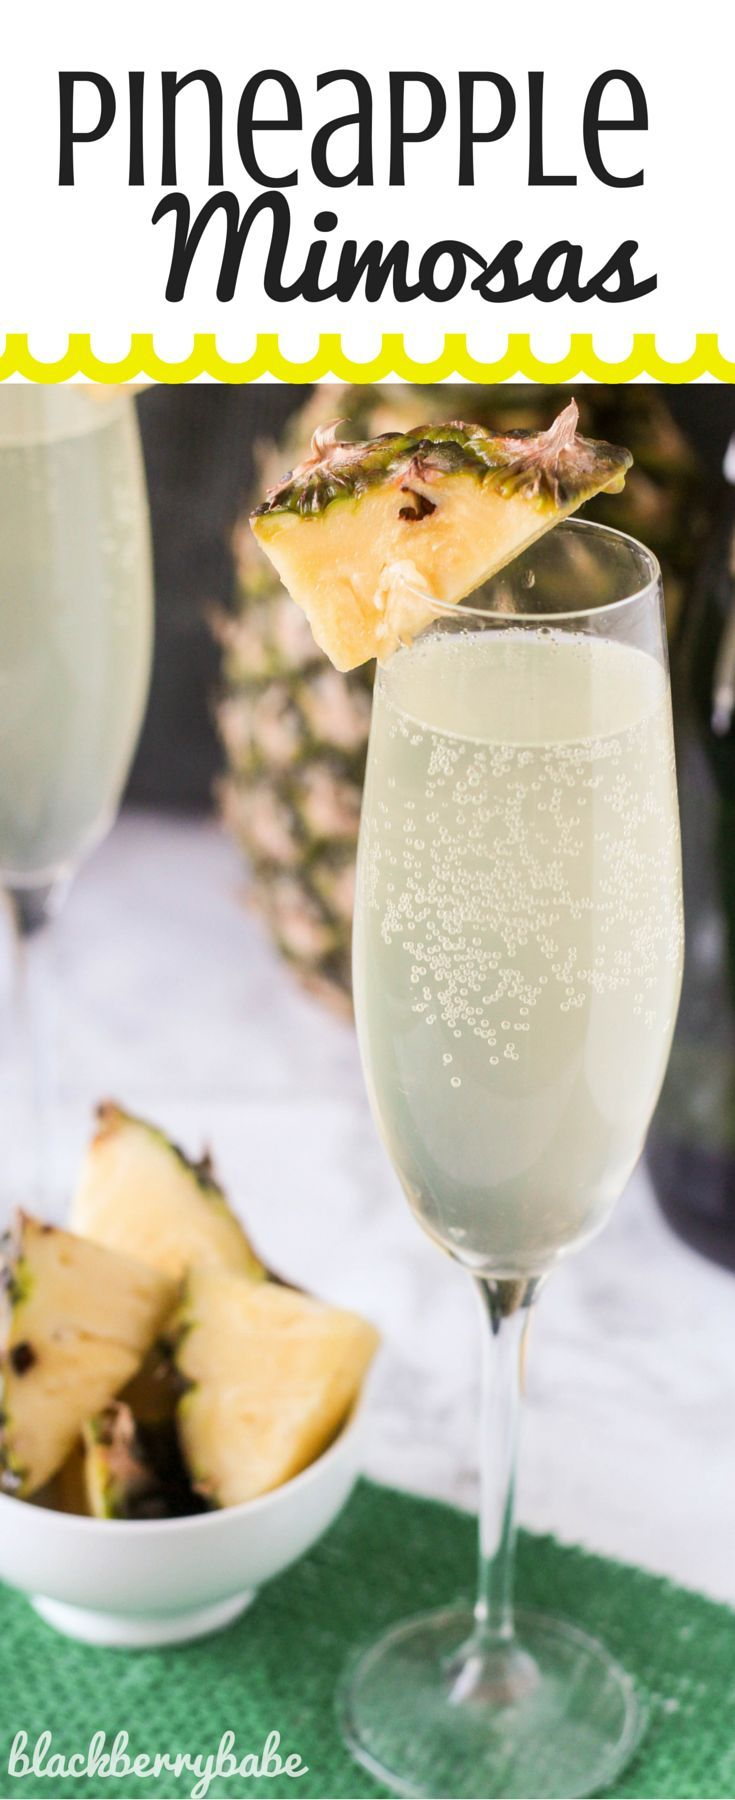 "Pineapple Mimosas | It is a fruity, tropical twist on traditional mimosas! So easy, with just three common ingredients. <a href=""/michelle_goth/"" title=""Blackberry Babe"">@Blackberry Babe</a>"